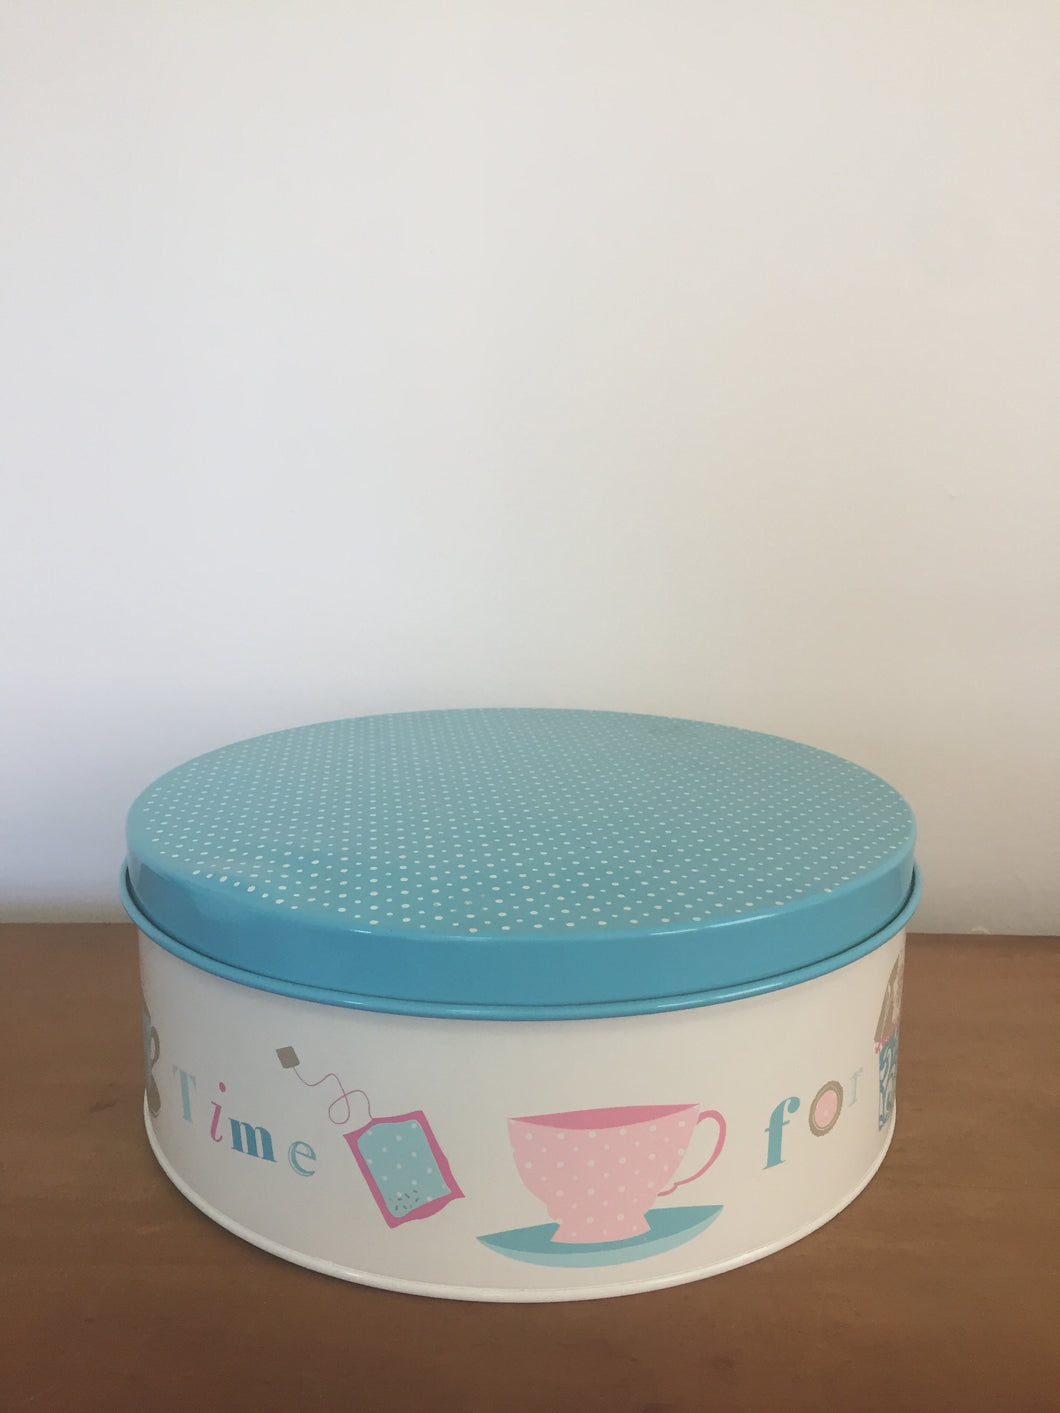 Cake tin with blue lid